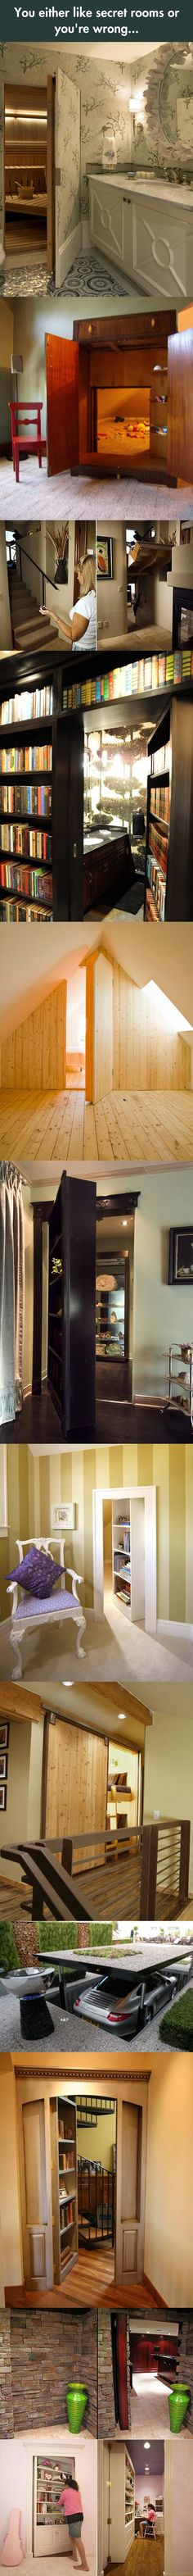 Cool Collection Of Secret Rooms - #SecretRoom, #SecretRooms